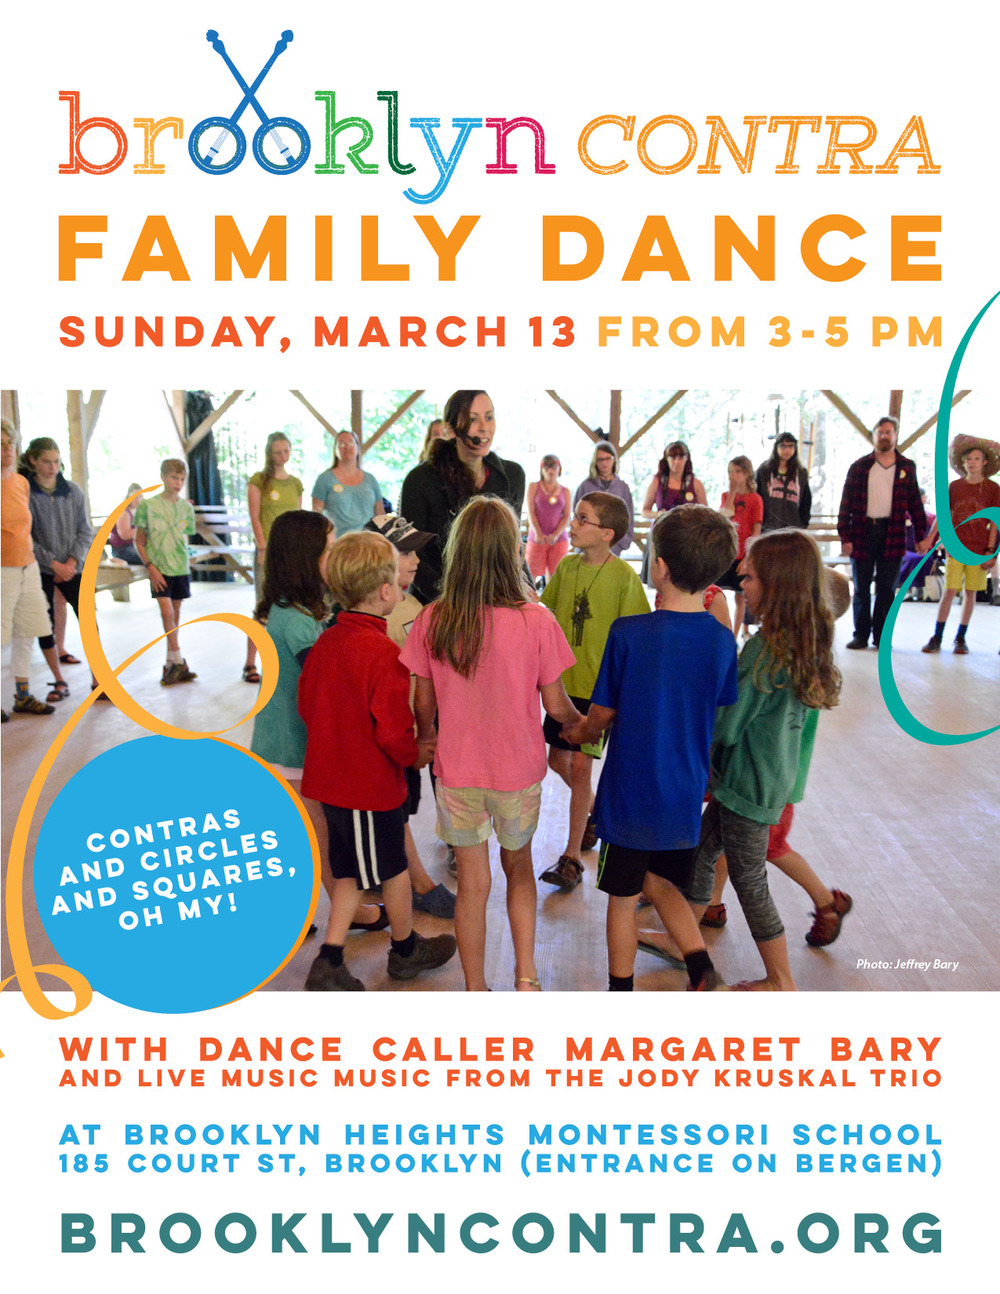 BkC-Family-Dance-Flyer-v2.jpg